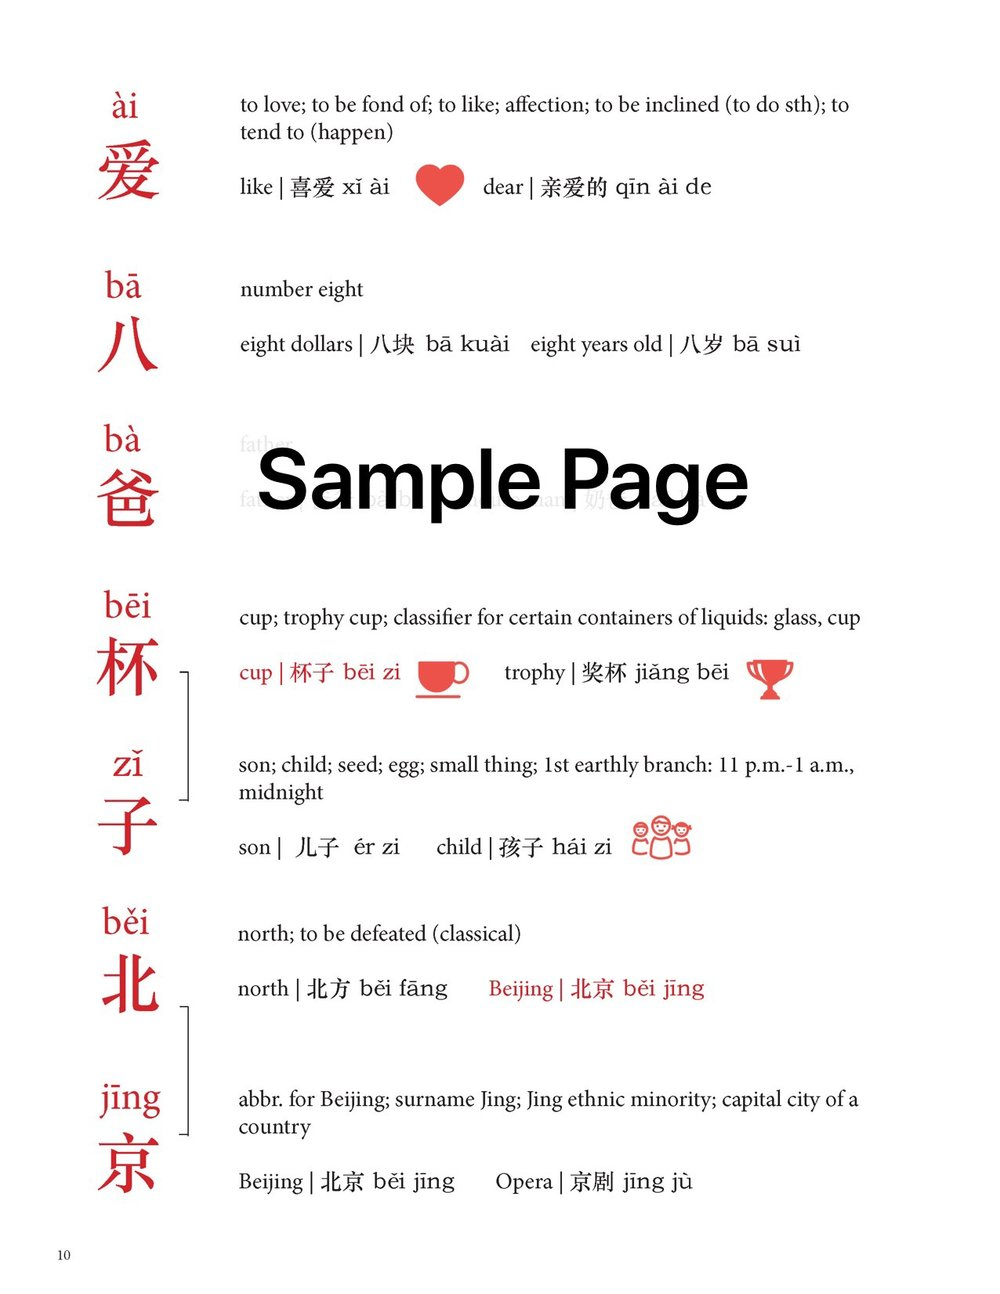 HSK Chinese Character Workbook - Inner Page Sample.jpg